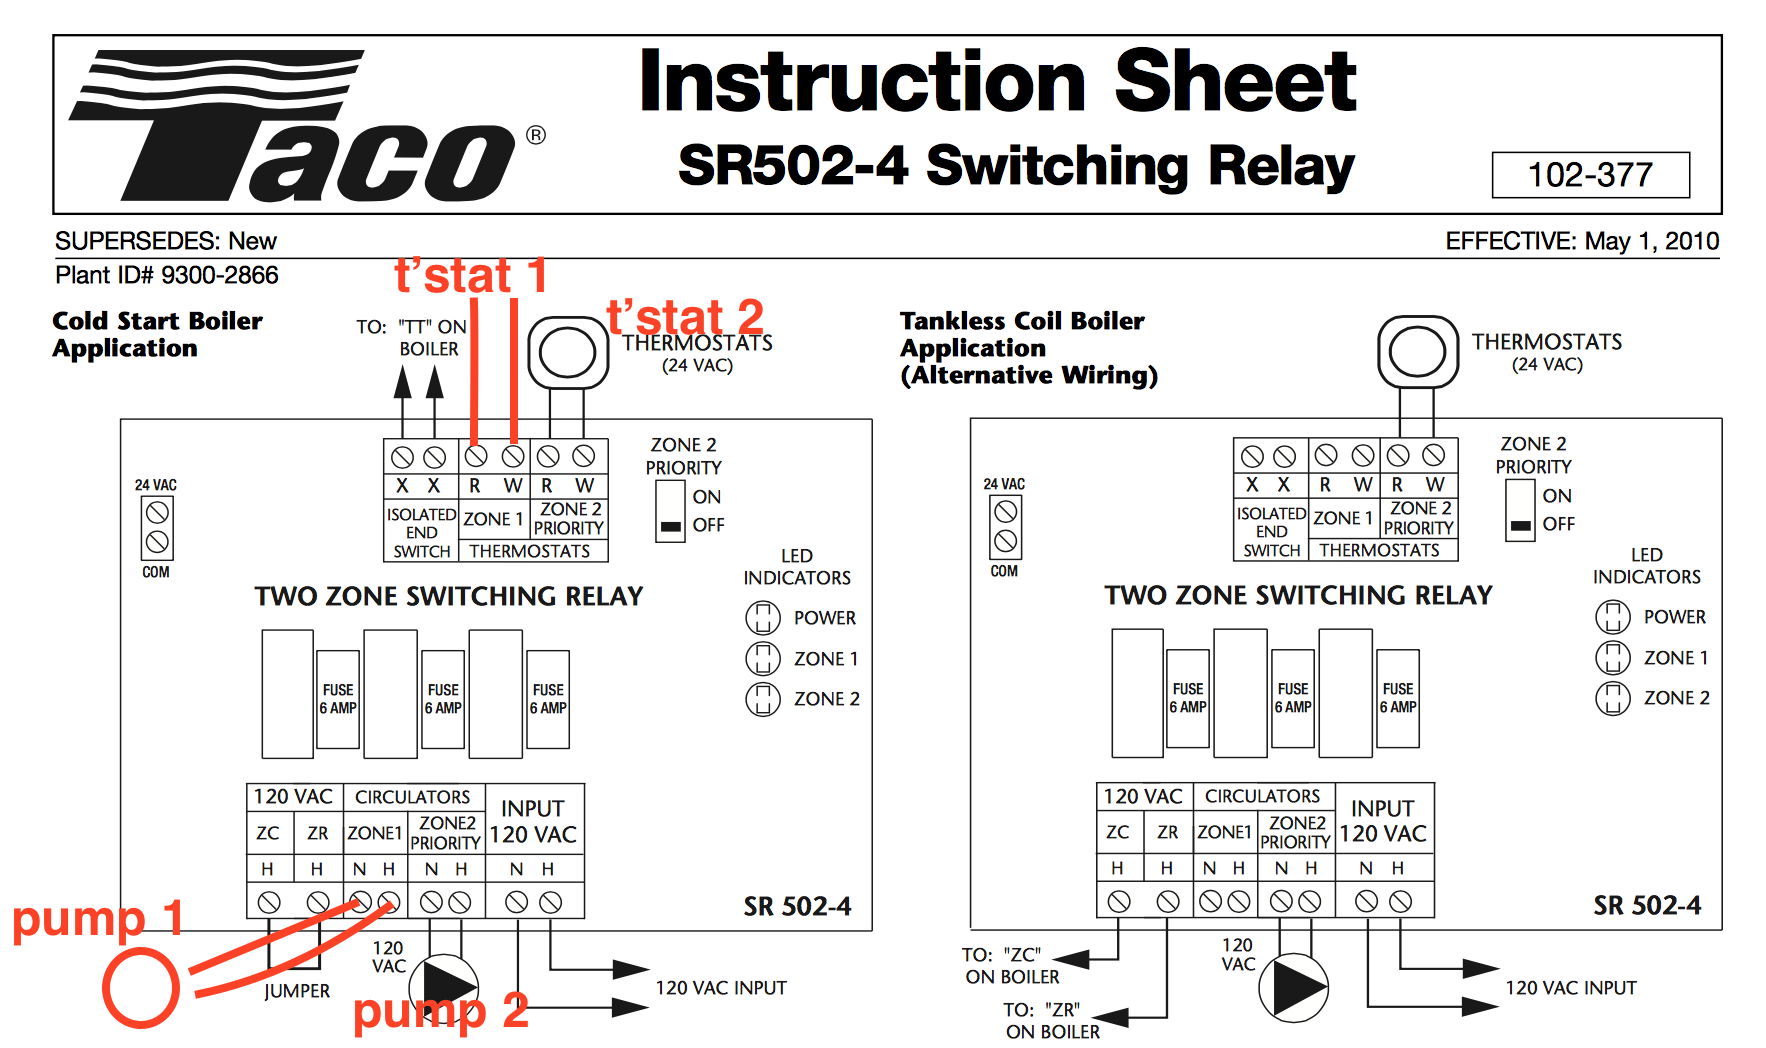 Taco Sr501 4 Switching Relay Honeywell Ra832a Wiring Diagram With Sr502 Pump Markup 2